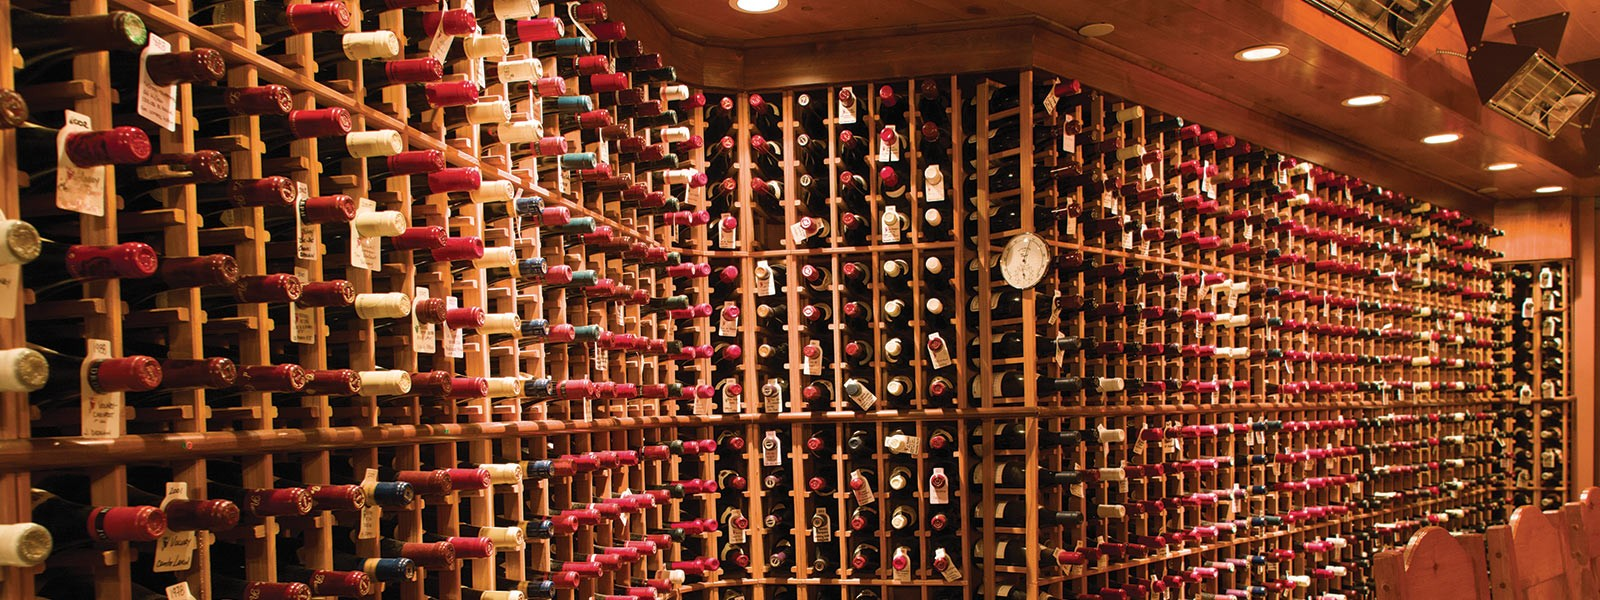 Wine cellar for wine collection